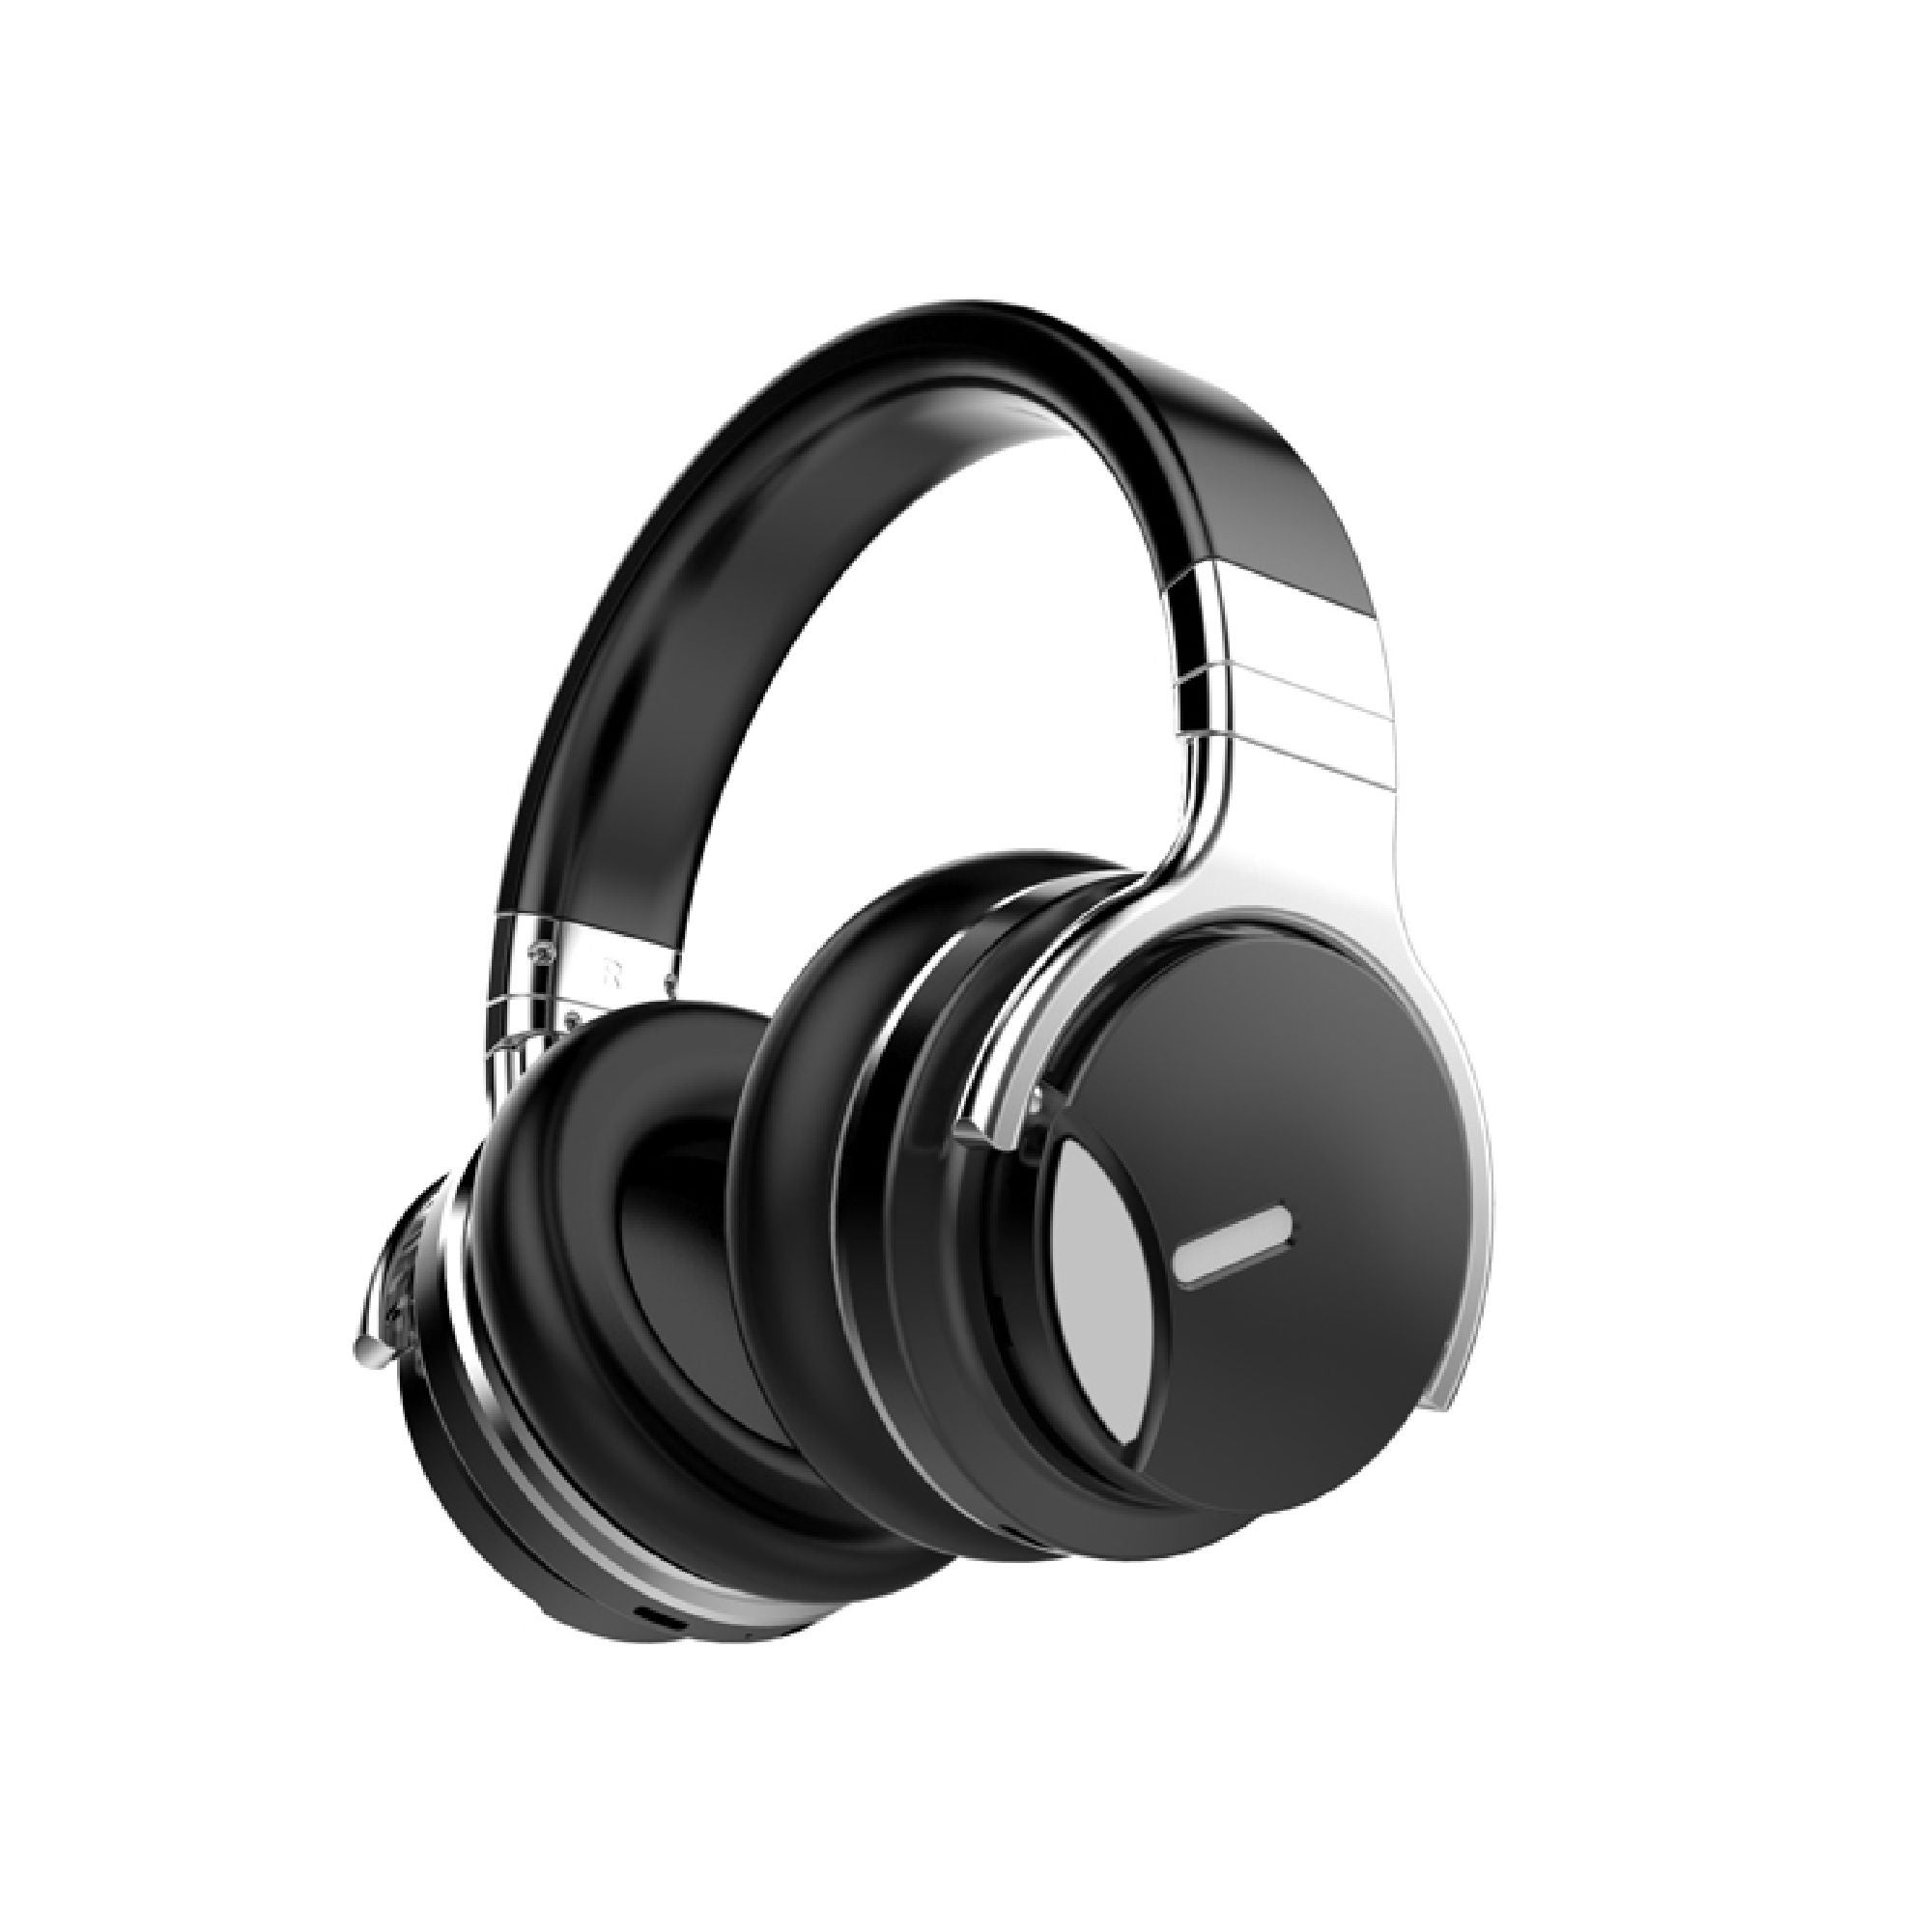 Shop Cowin Max Series E7s Upgraded Active Noise Cancelling Headphones Bluetooth Over Ear Headphones With Microphone Overstock 18114072